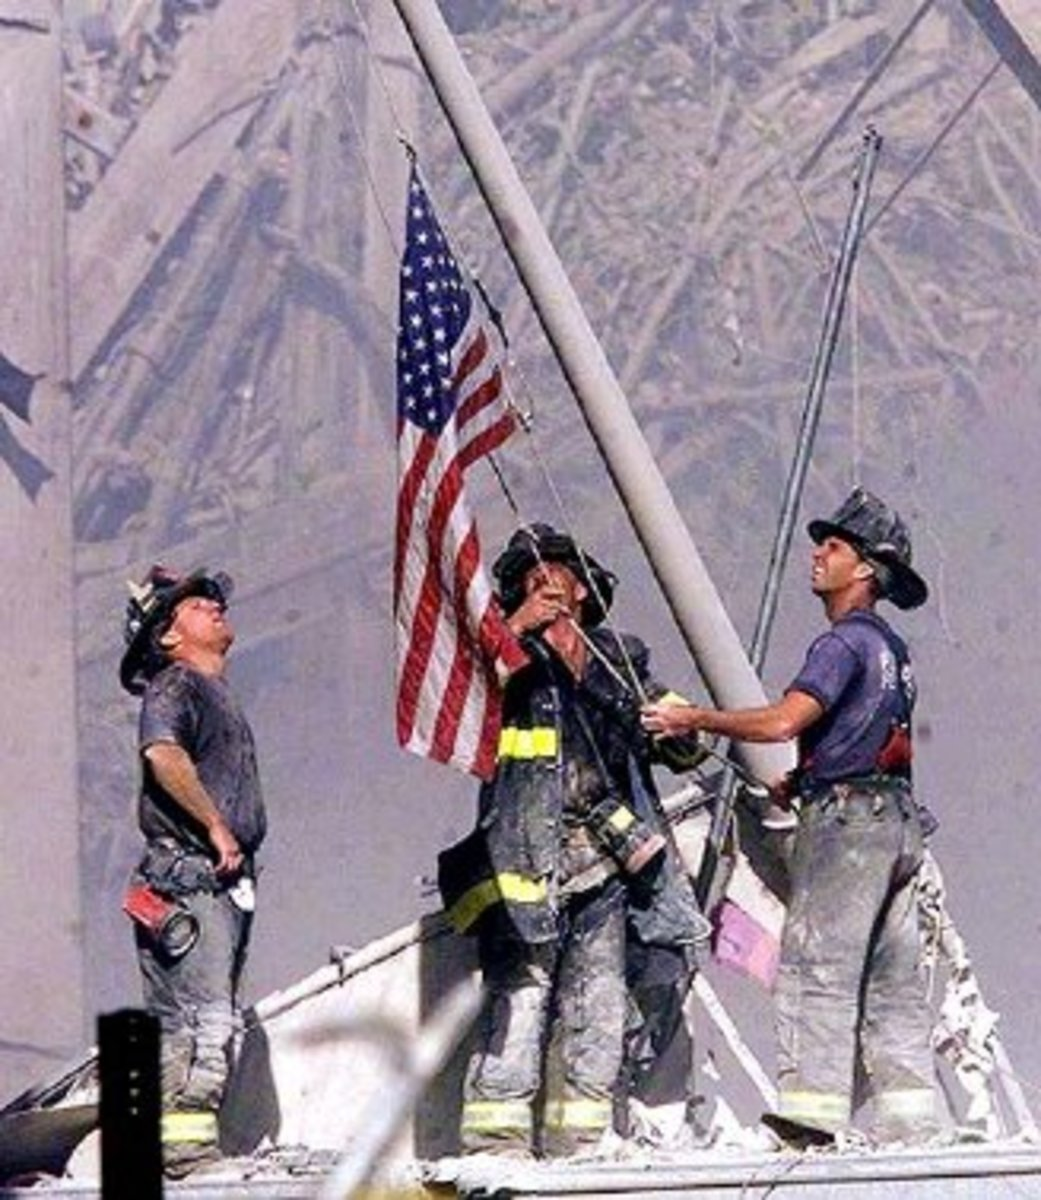 NYC Firefighters Raising the Flag 911